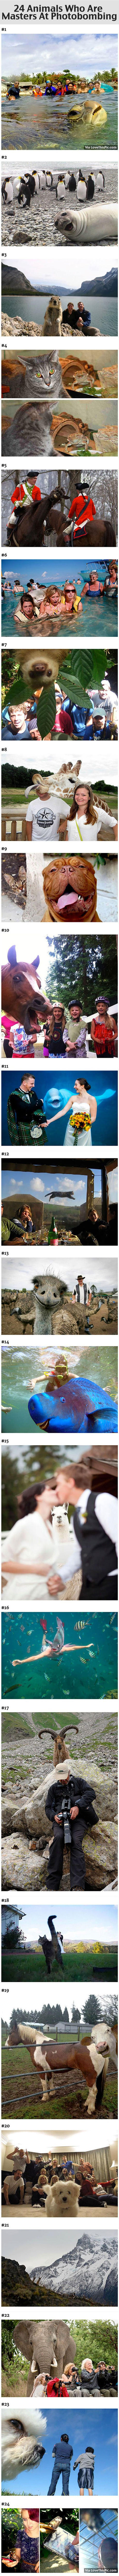 24 Animals Who Are Masters At Photobombing